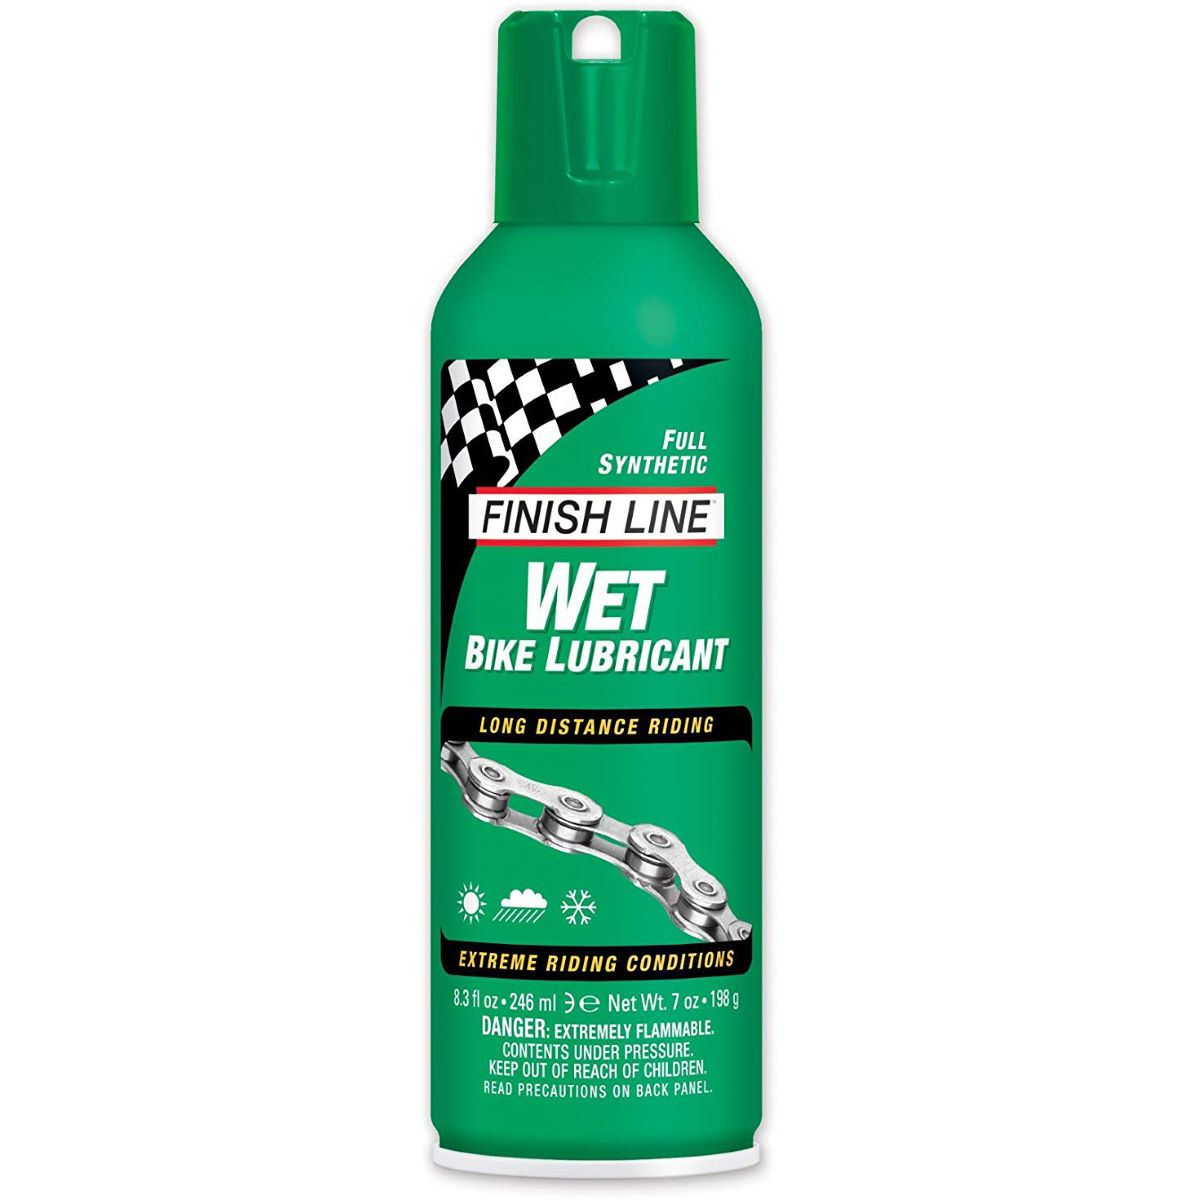 Finish Line Finish Line Cross Country Wet Chain Lube Aerosol   Lube